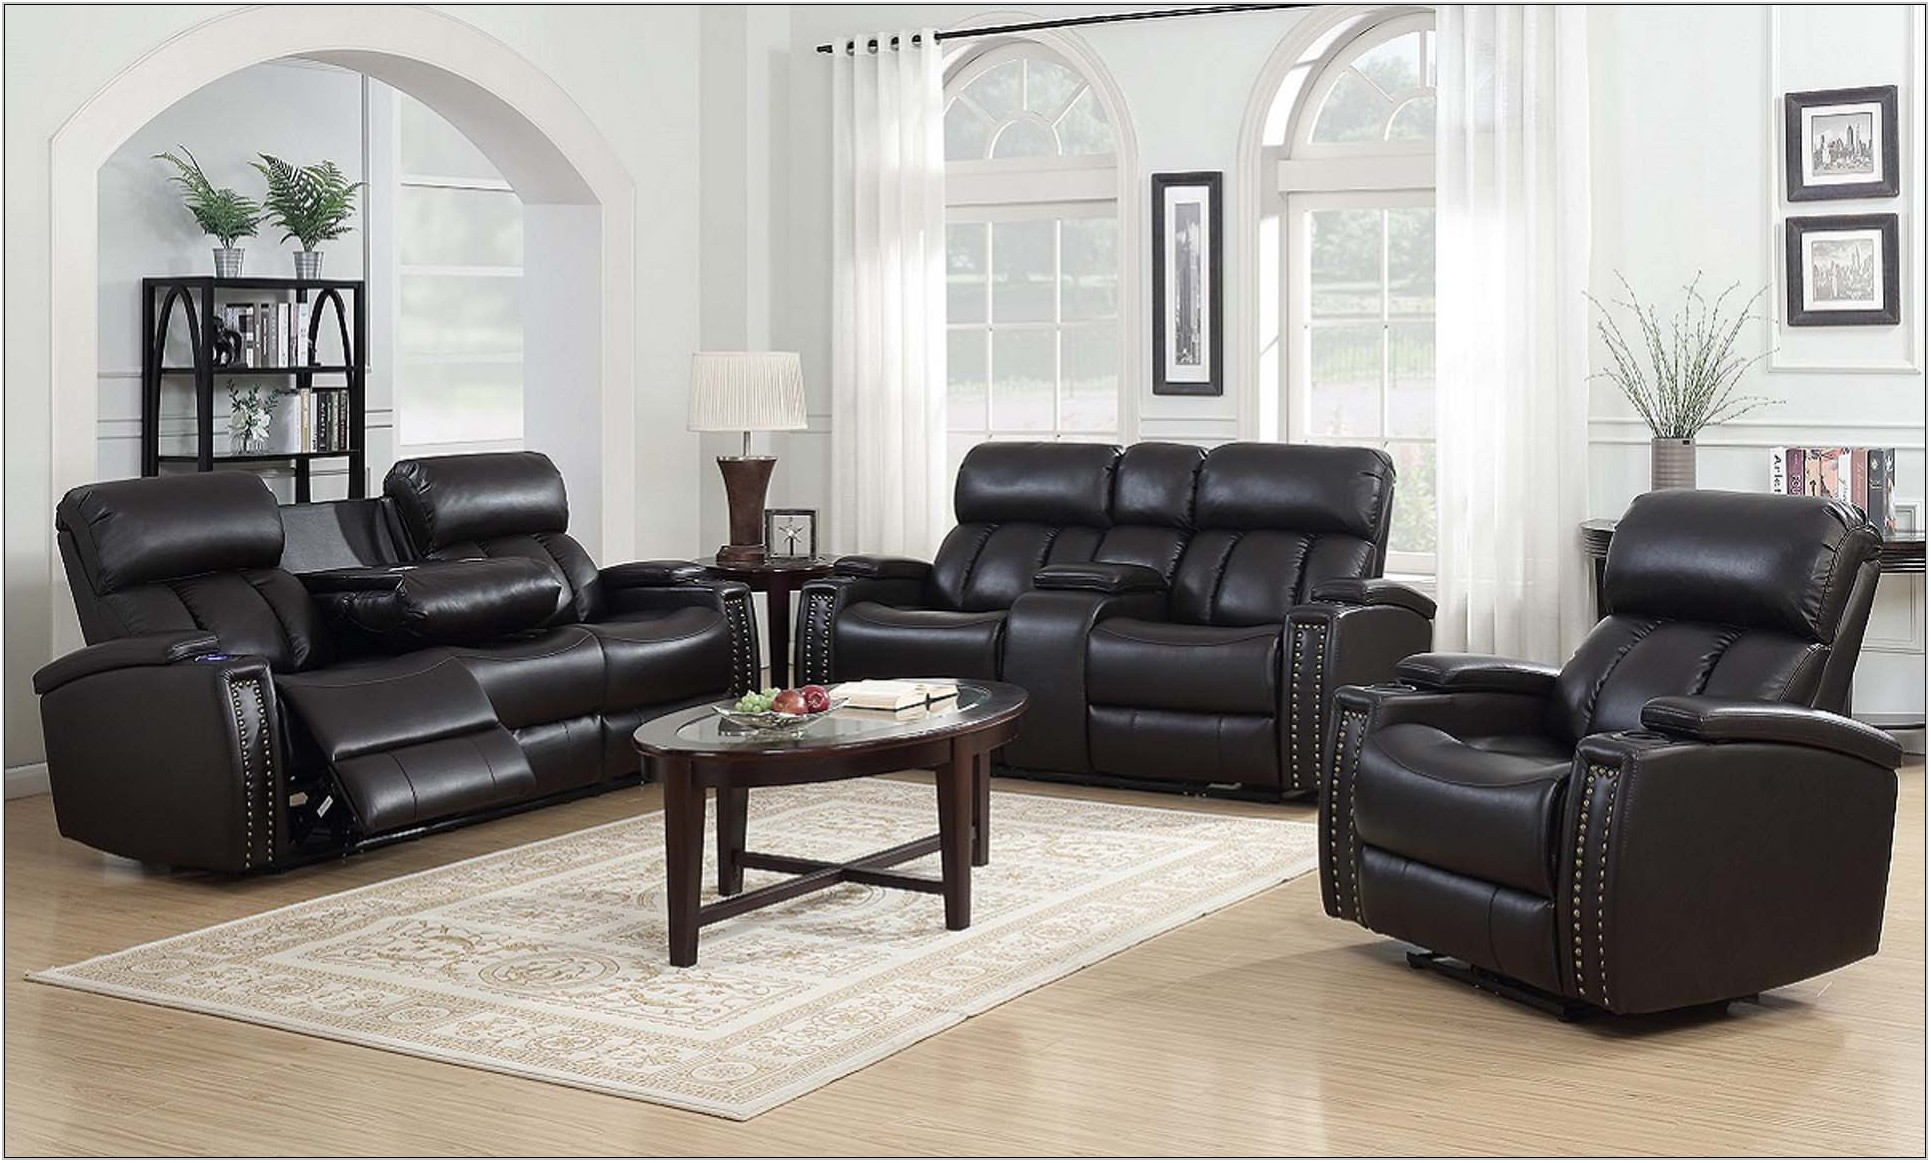 Reclining 3 Piece Living Room Set